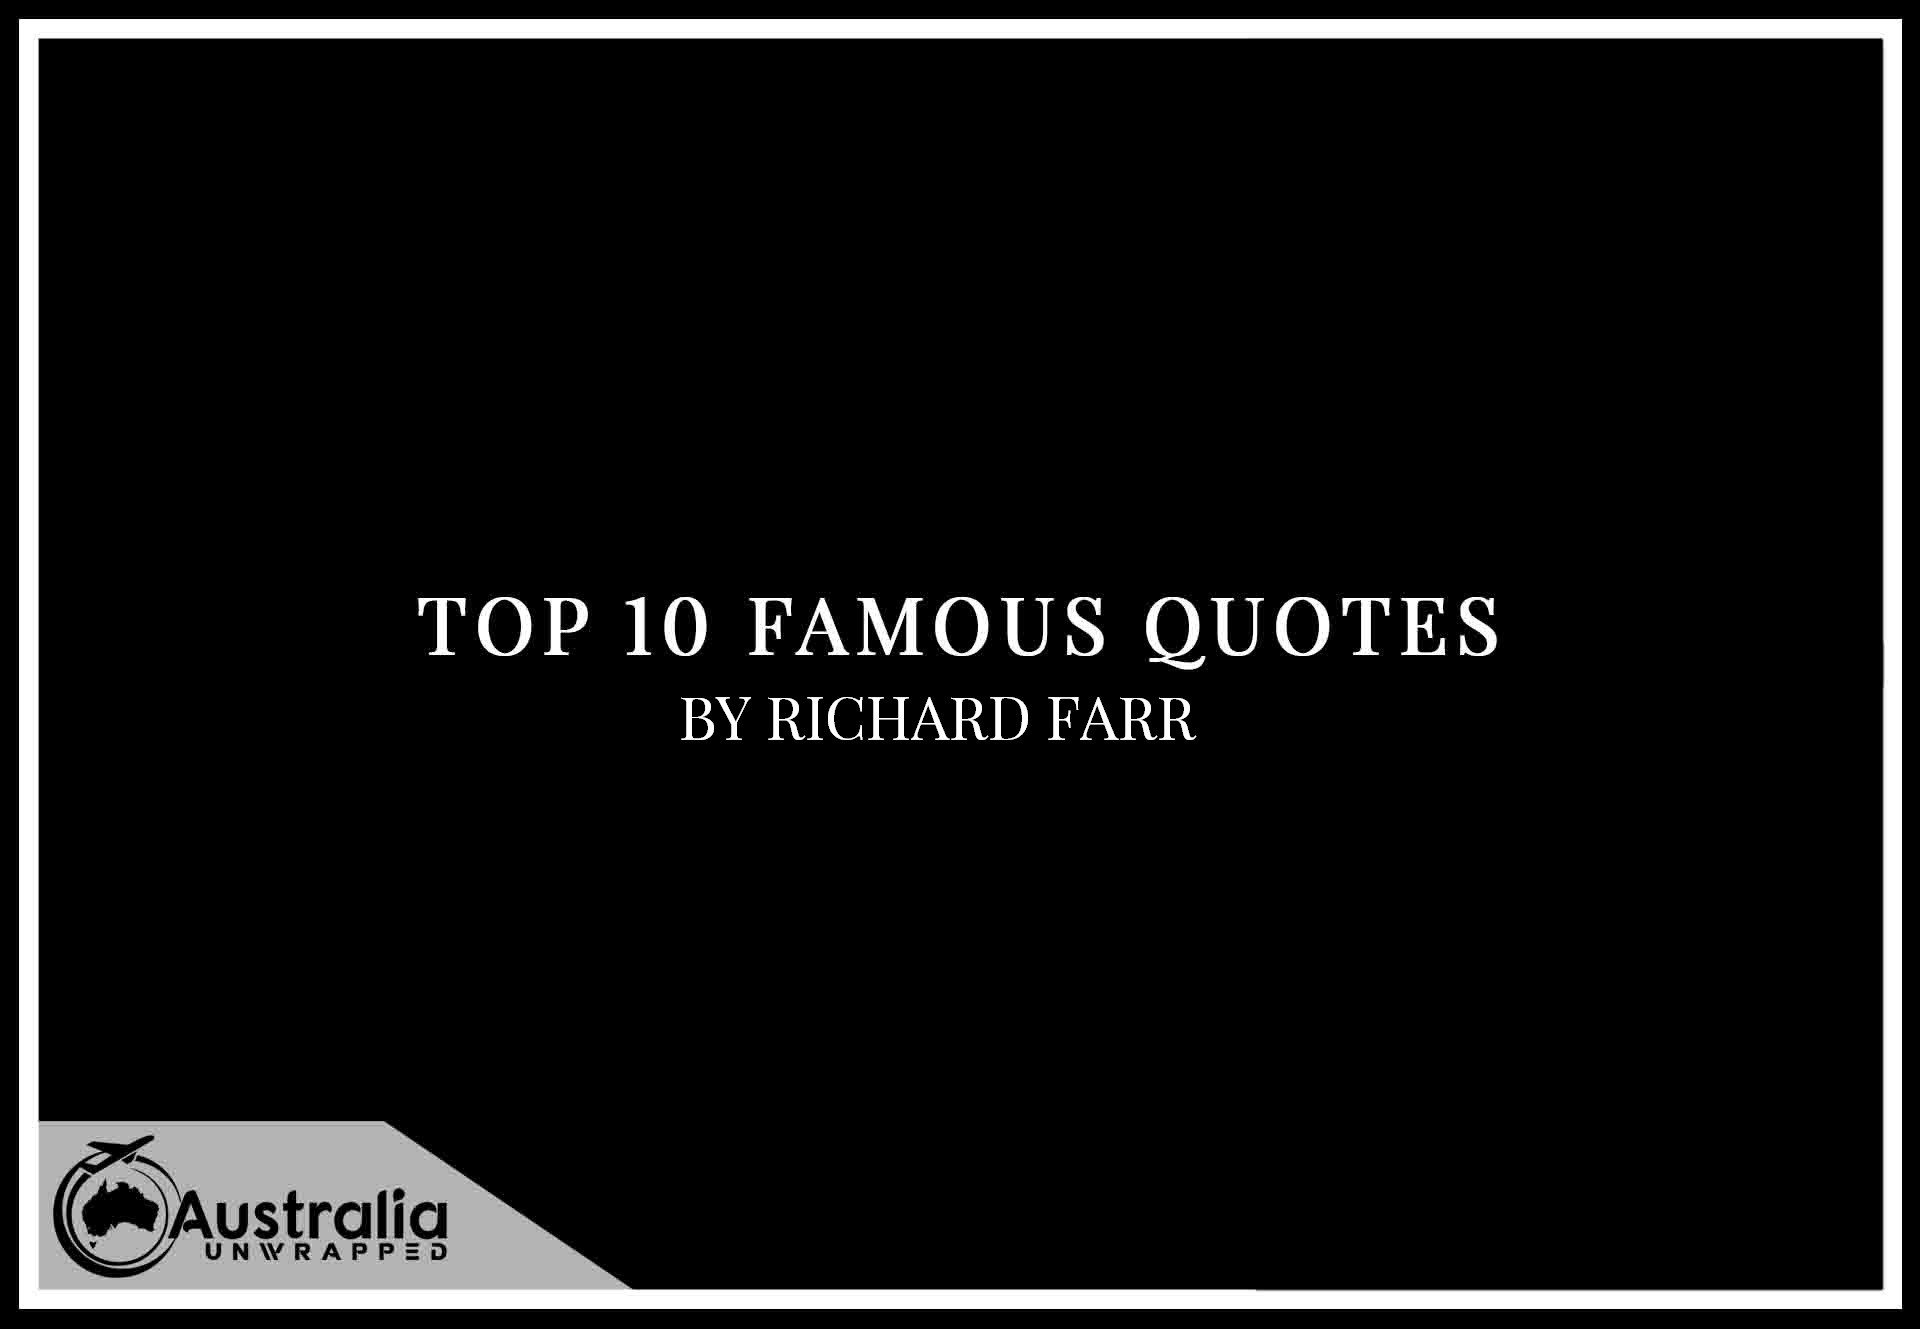 Top 10 Famous Quotes by Author Richard Farr